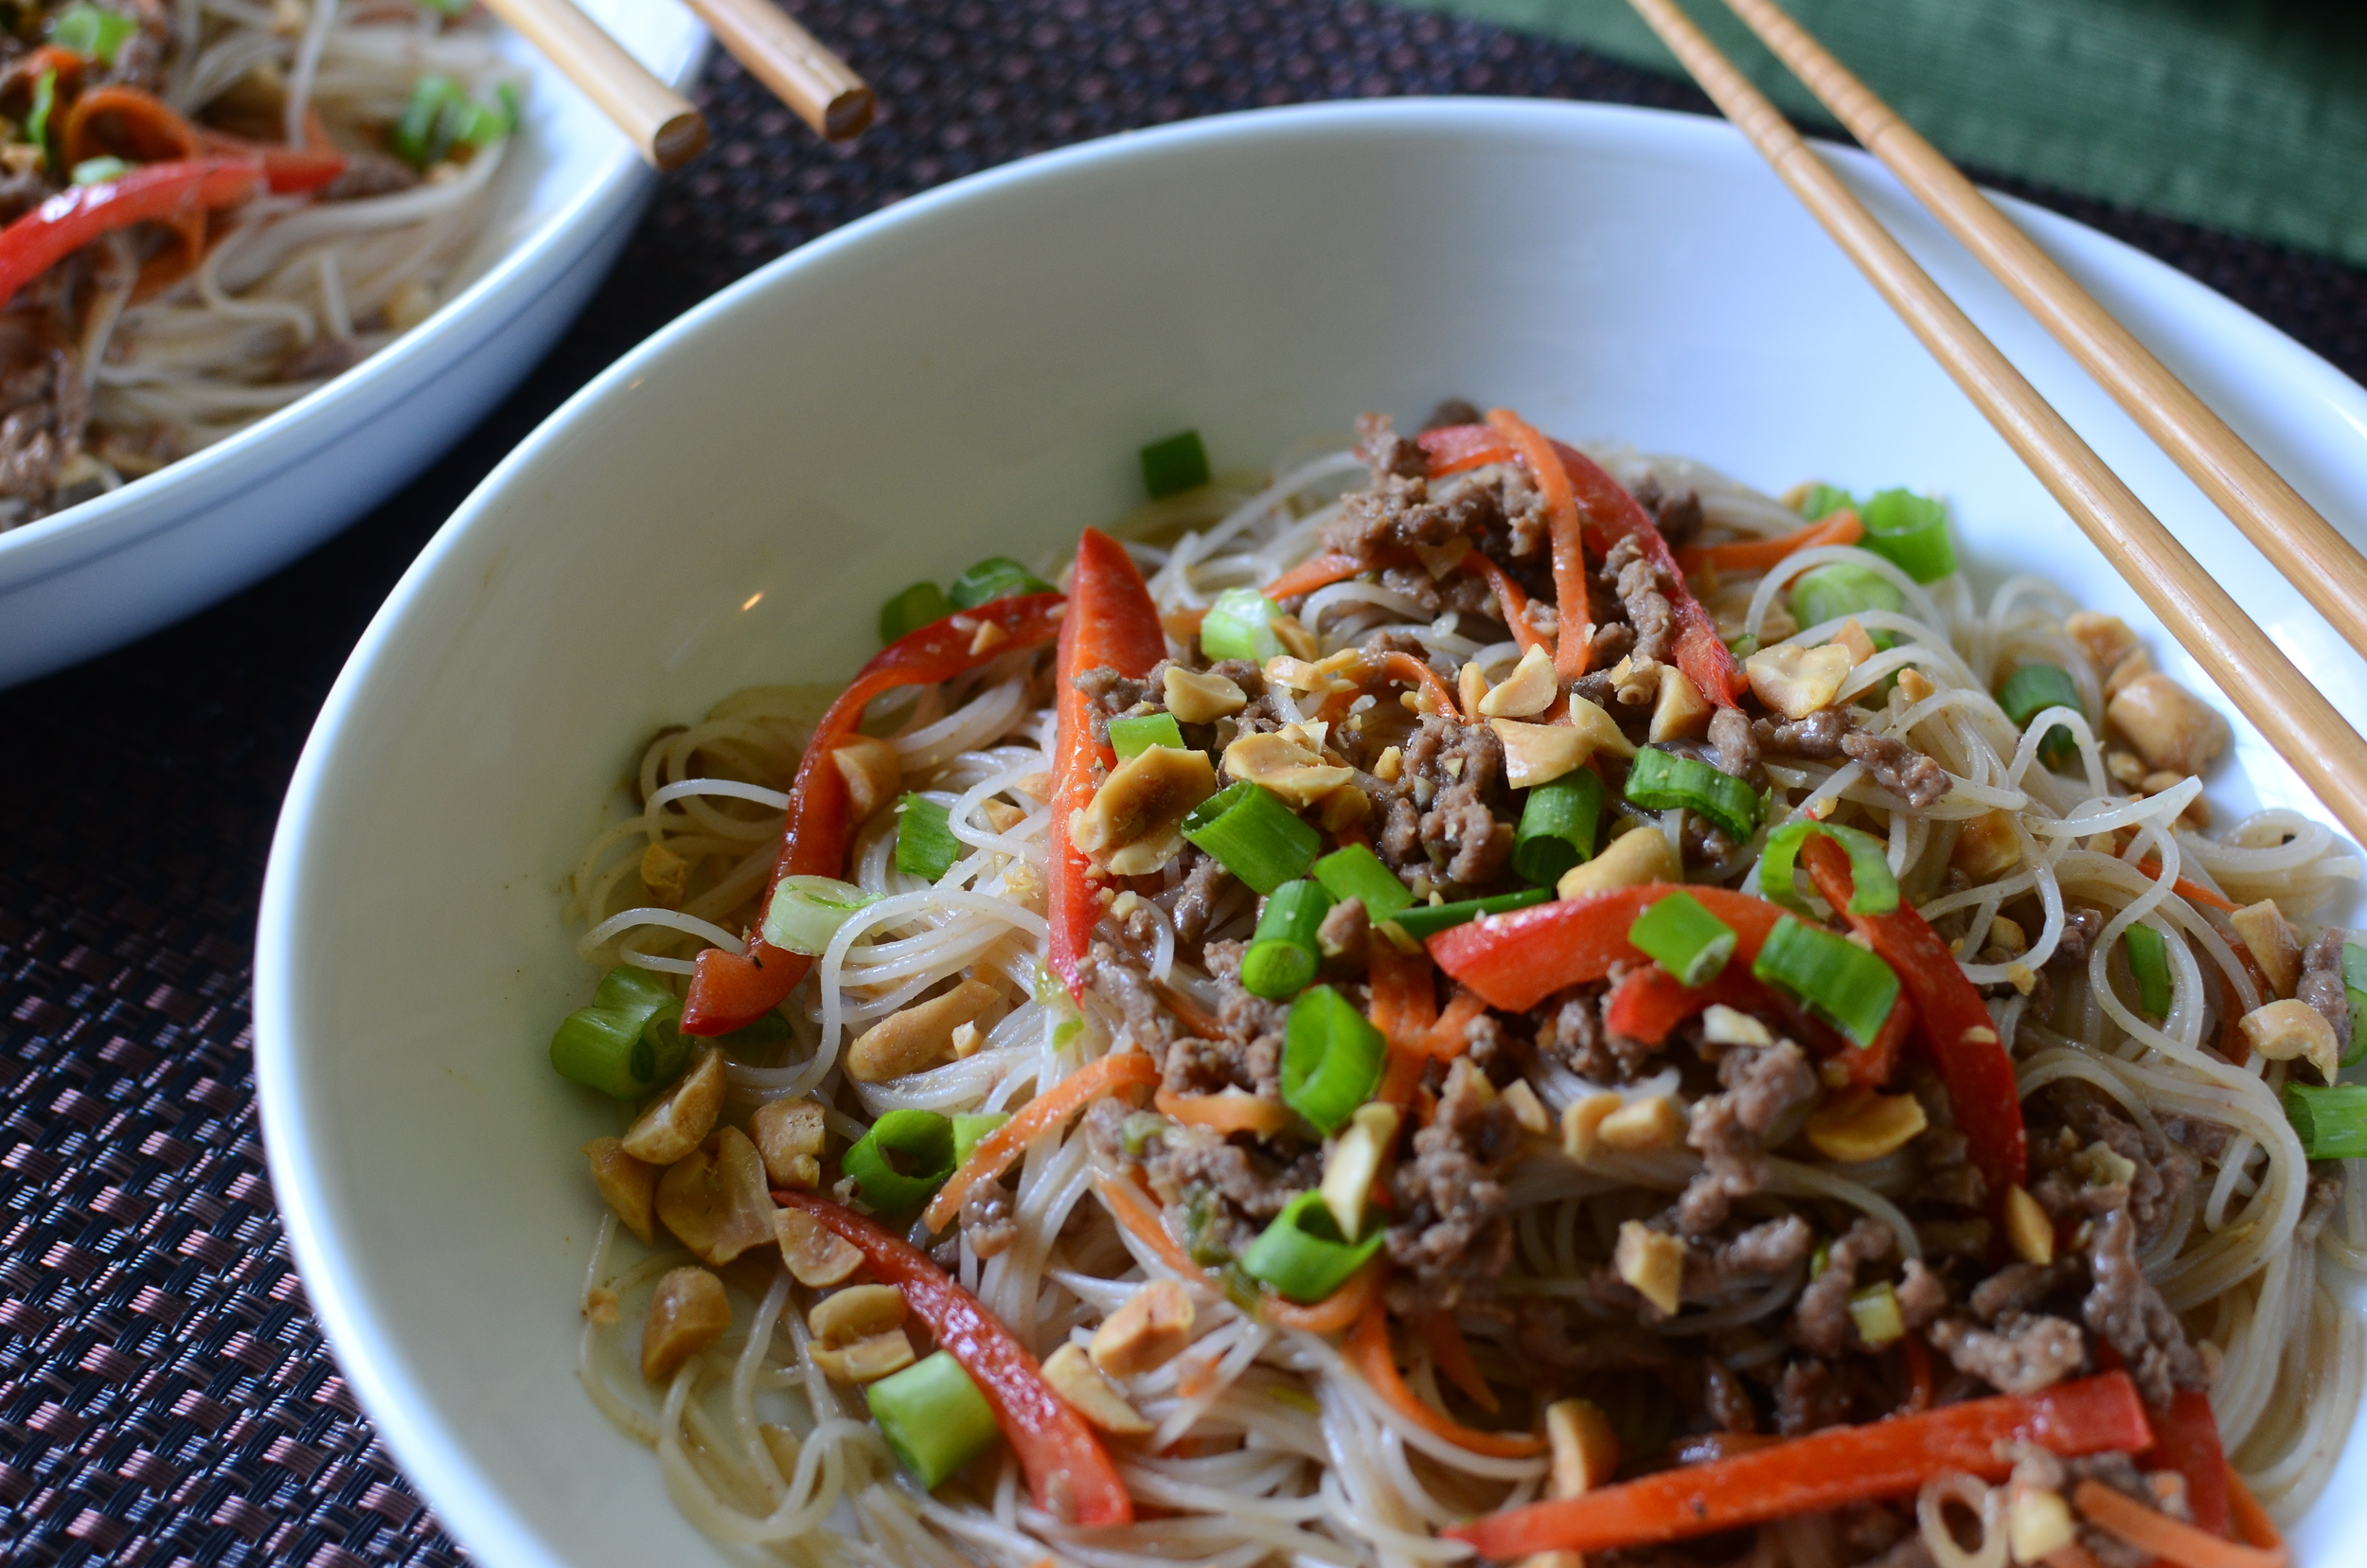 This recipe works well with thin rice noodles too (also called rice vermicelli or rice sticks).